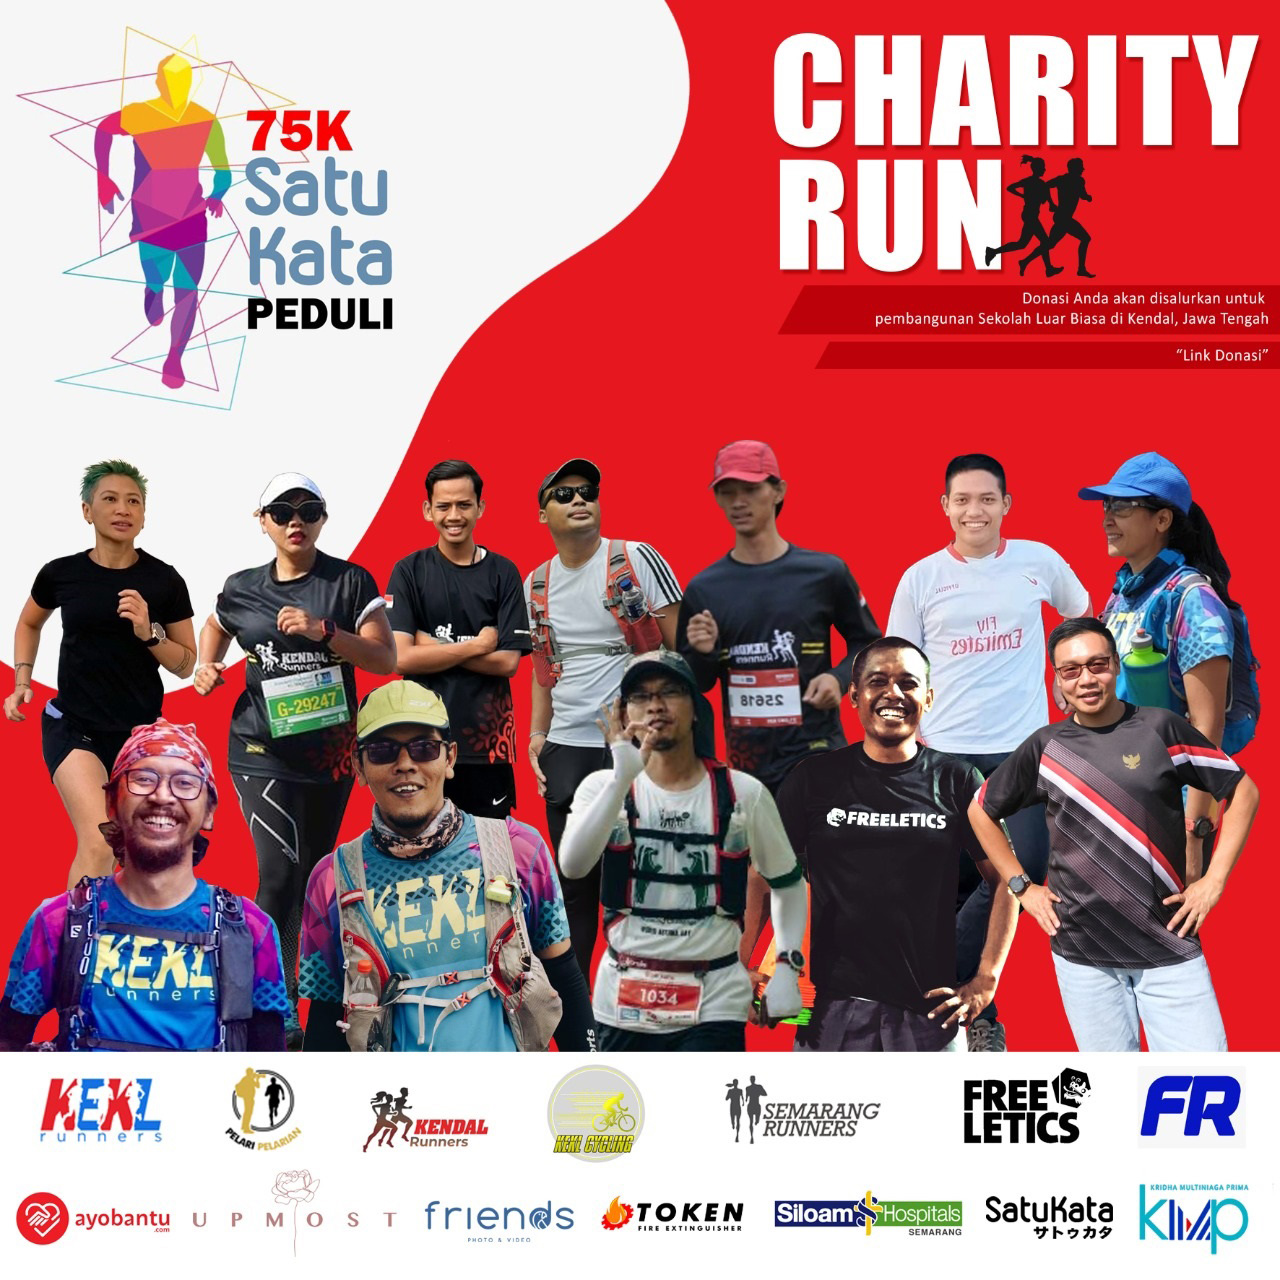 75KM SatuKata Peduli Charity Run